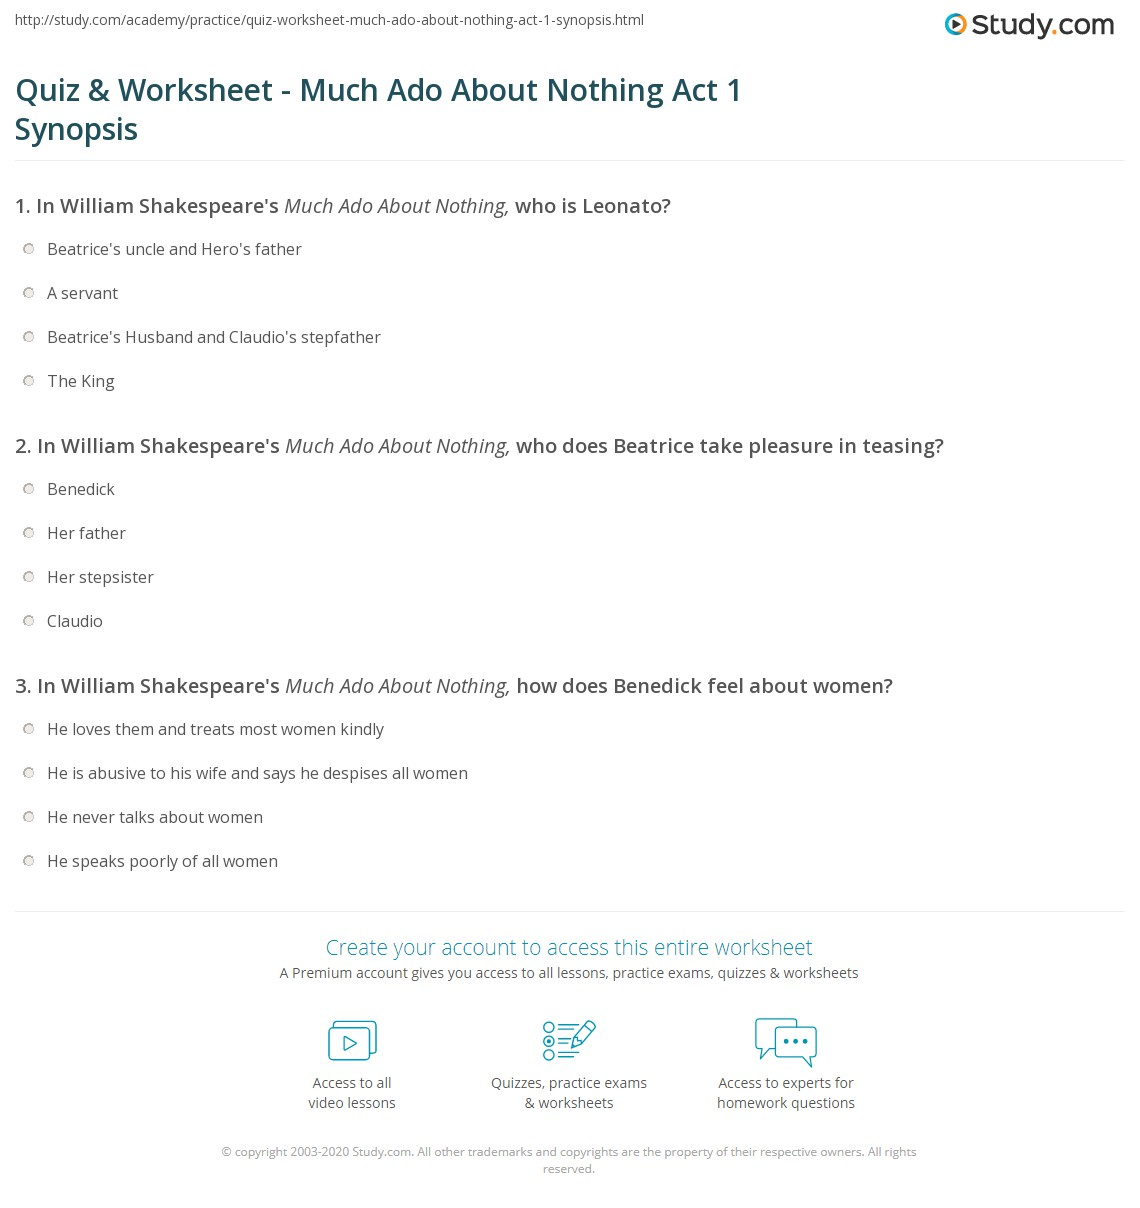 Quiz & Worksheet - Much Ado About Nothing Act 1 Synopsis | Study.com